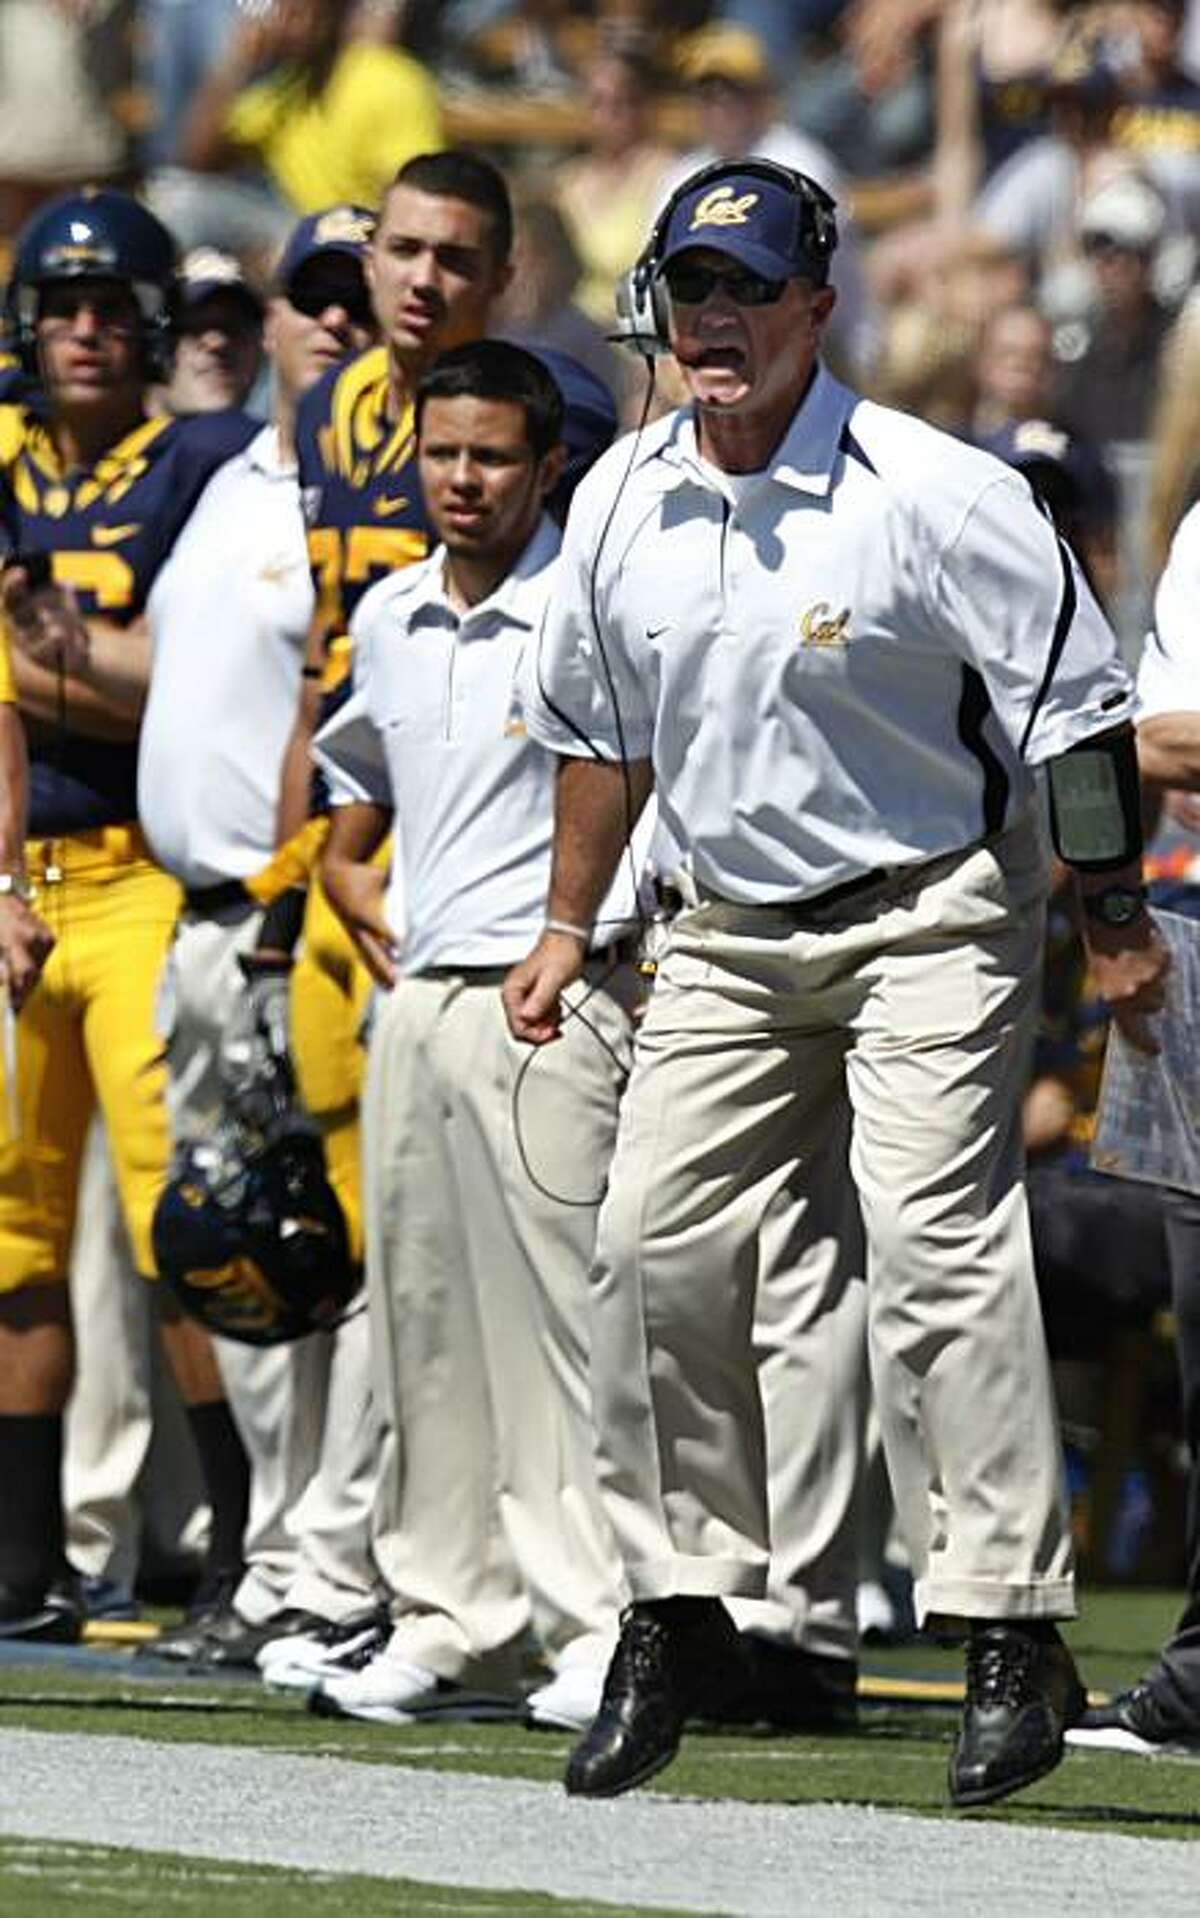 Cal head coach Jeff Tedford reacts to a non-call during a kick-off in the first half of the Bears' game against the Colorado Buffaloes in Berkeley on Saturday.